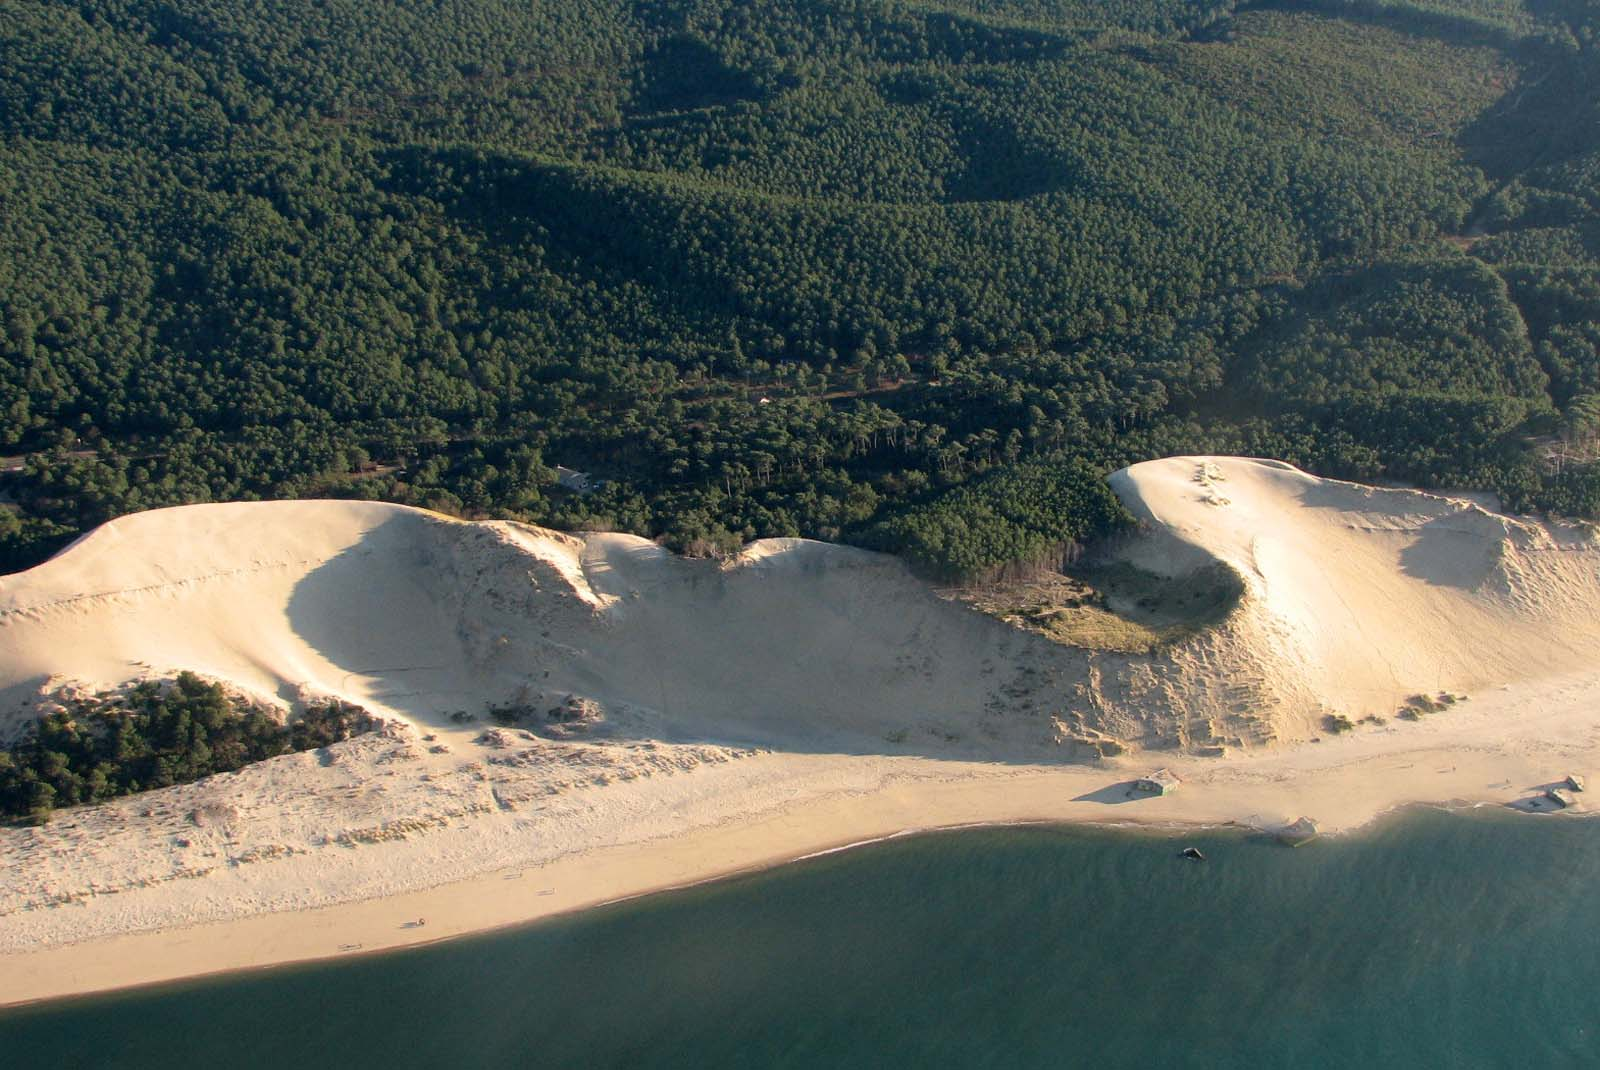 Arcachon Bay The Great Dune Of Pilat Cabadentra Bed And